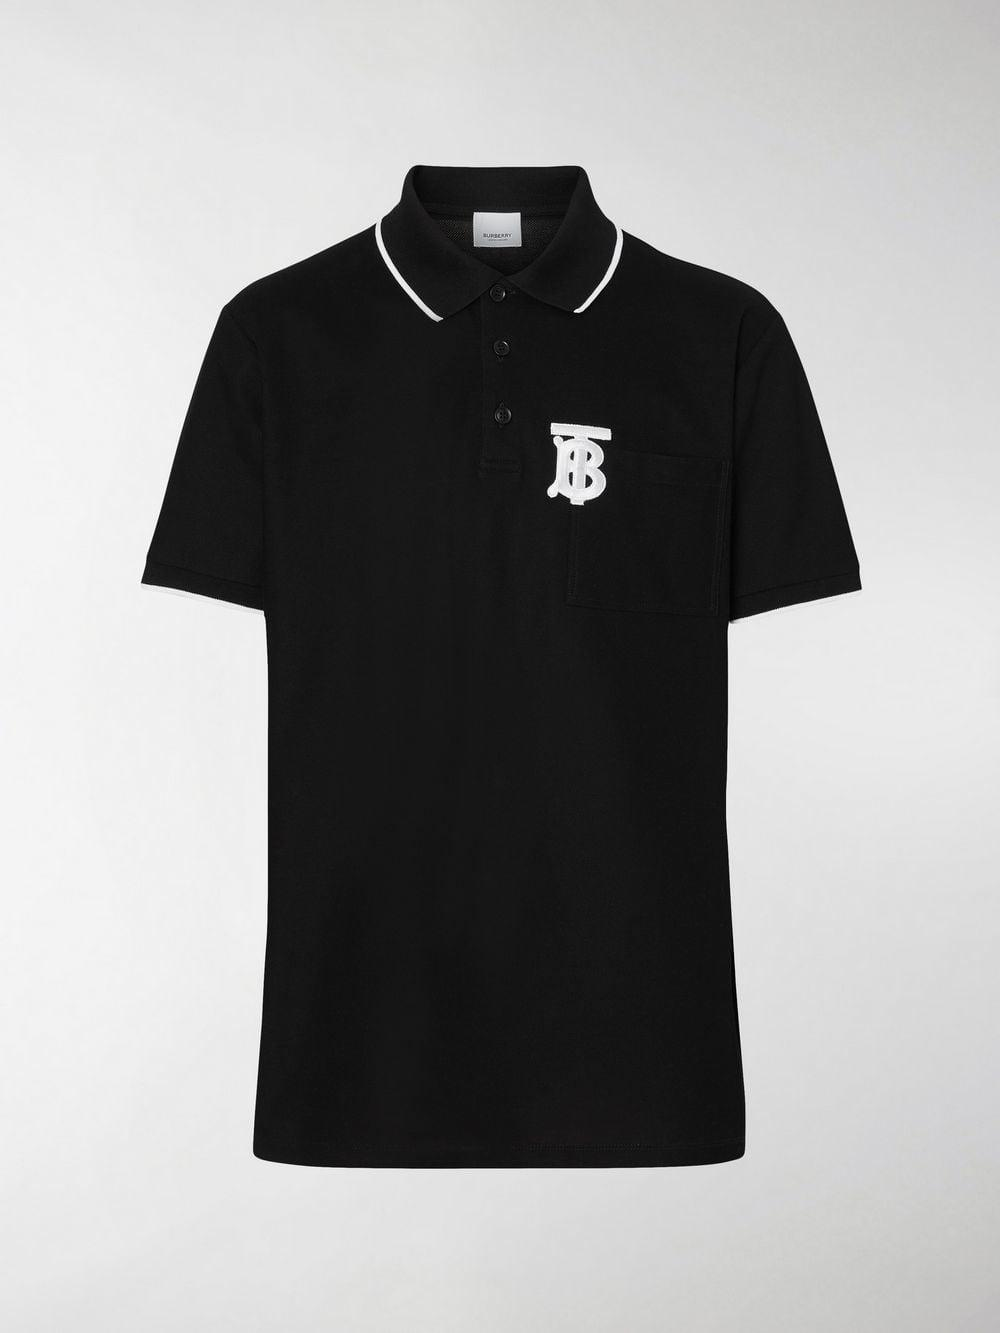 9a5ad41dcd903a Lyst - Burberry Monogram Motif Tipped Cotton Piqué Polo Shirt in ...